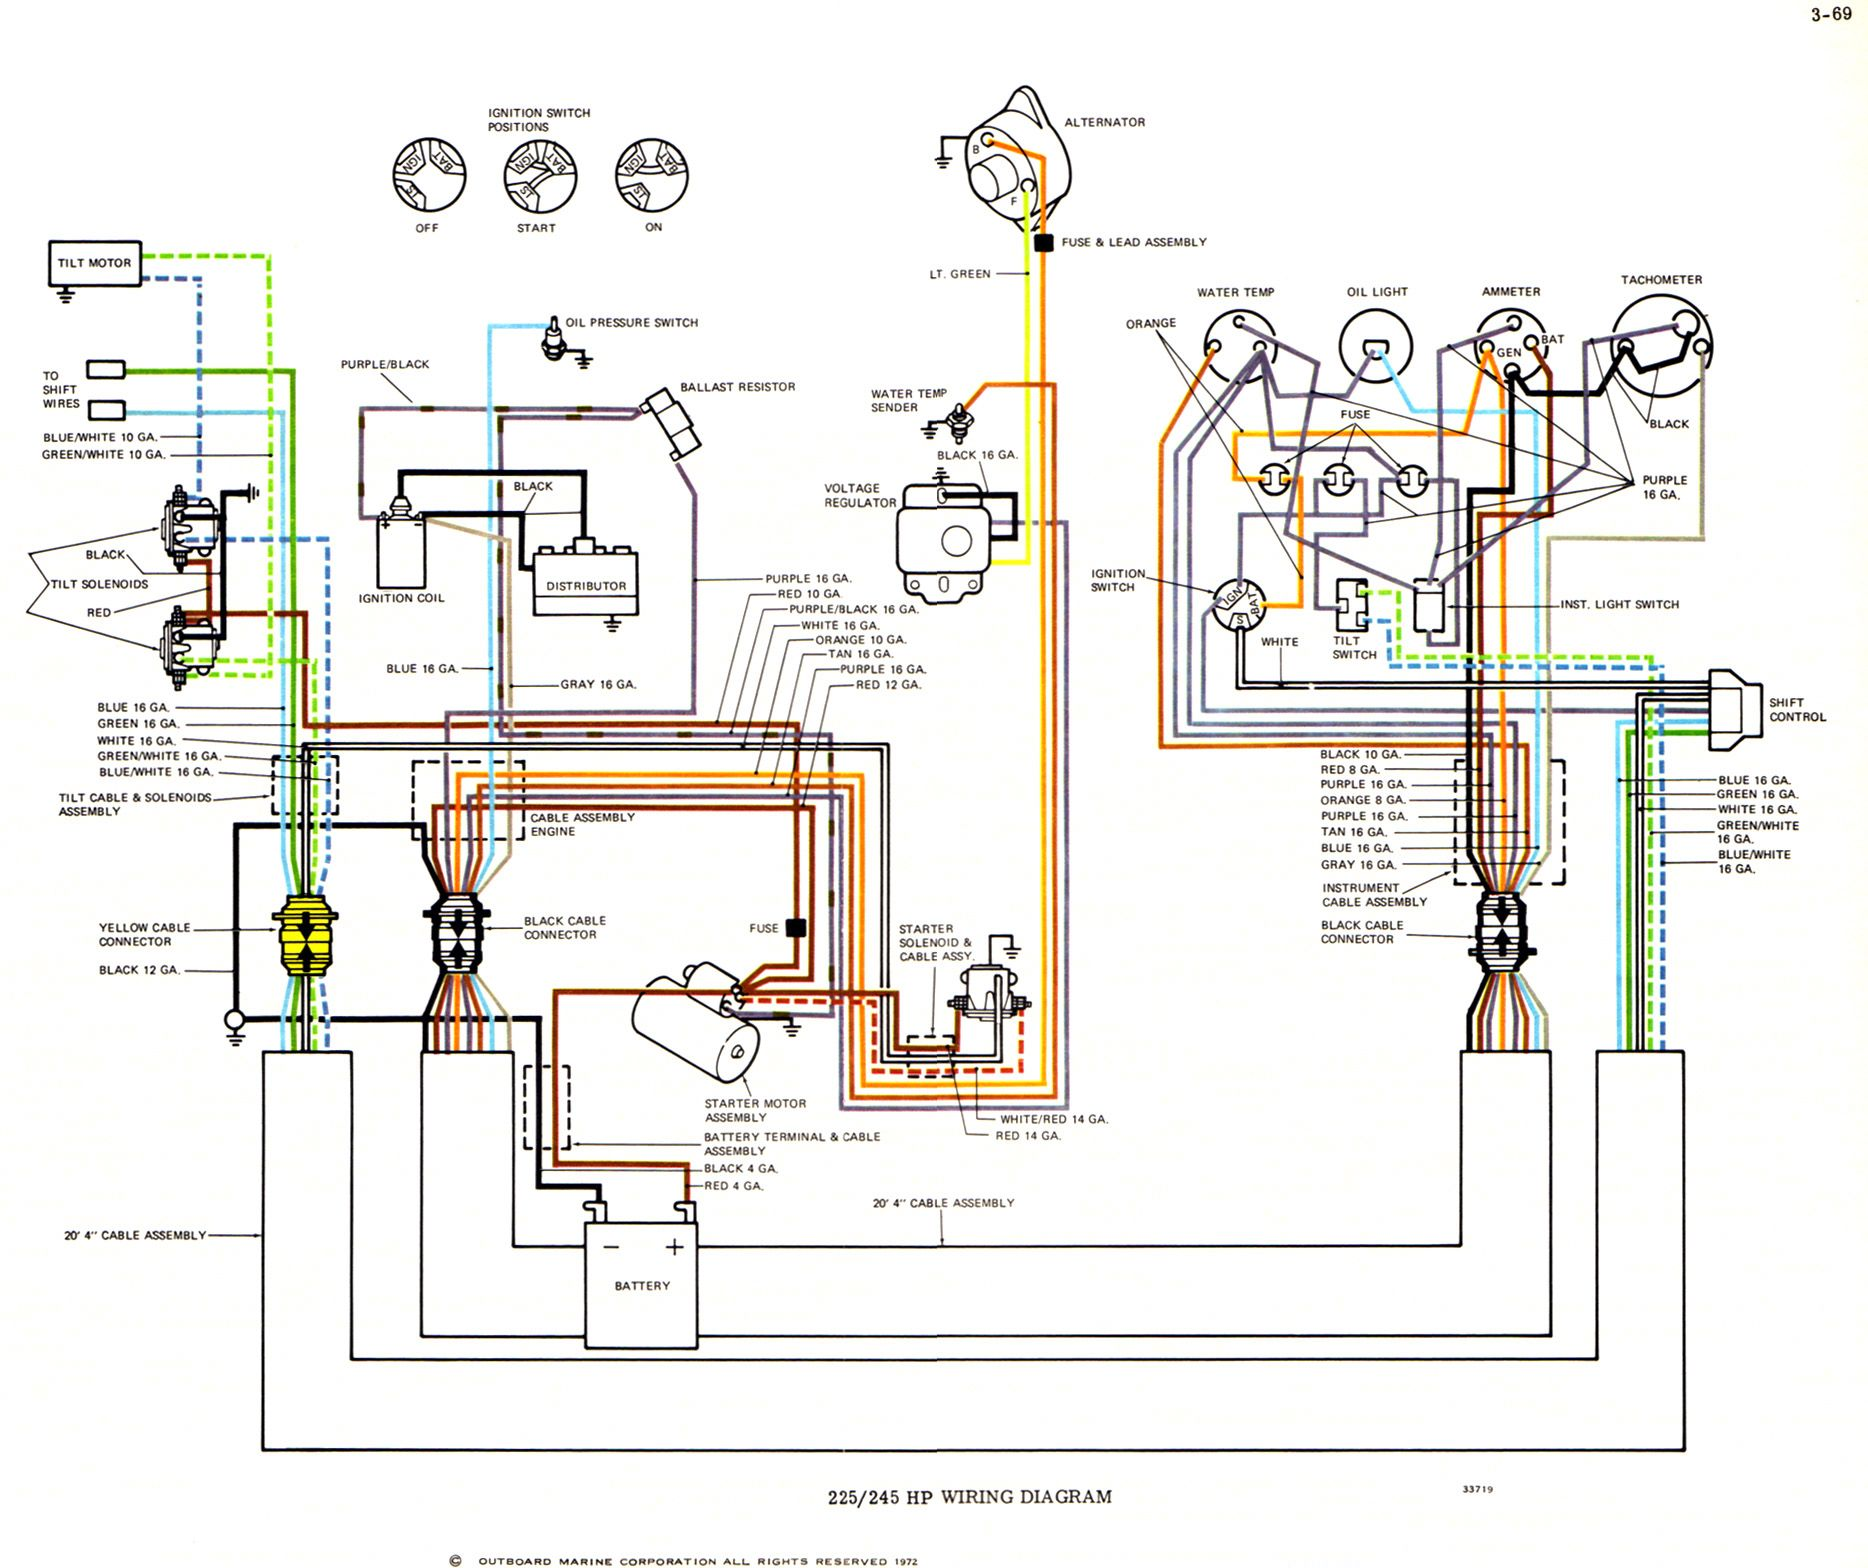 hight resolution of jet boat engine wiring pin by ellok network on home interior electrical wiring diagramboat wiring electrical wiring diagram